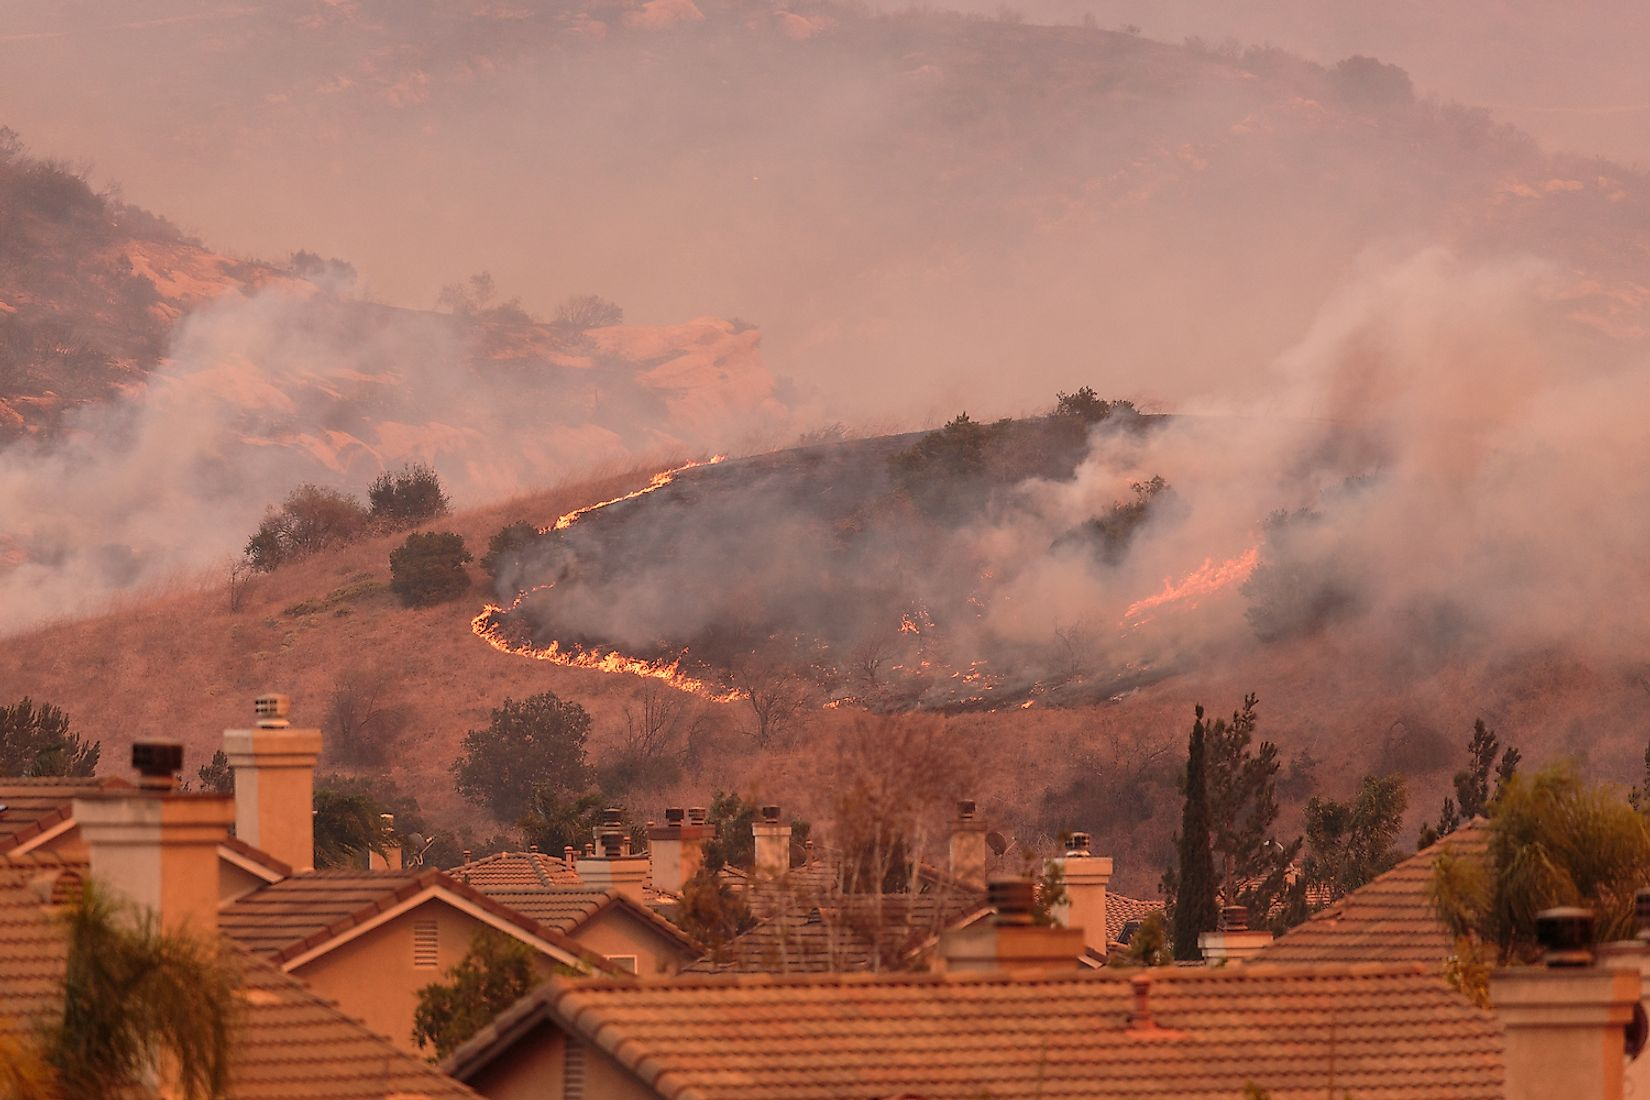 A view of the spreading flames from the Canyon Fire 2 wildfire in Anaheim Hills and the City of Orange. Image credit: Aarti Kalyani/Shutterstock.com